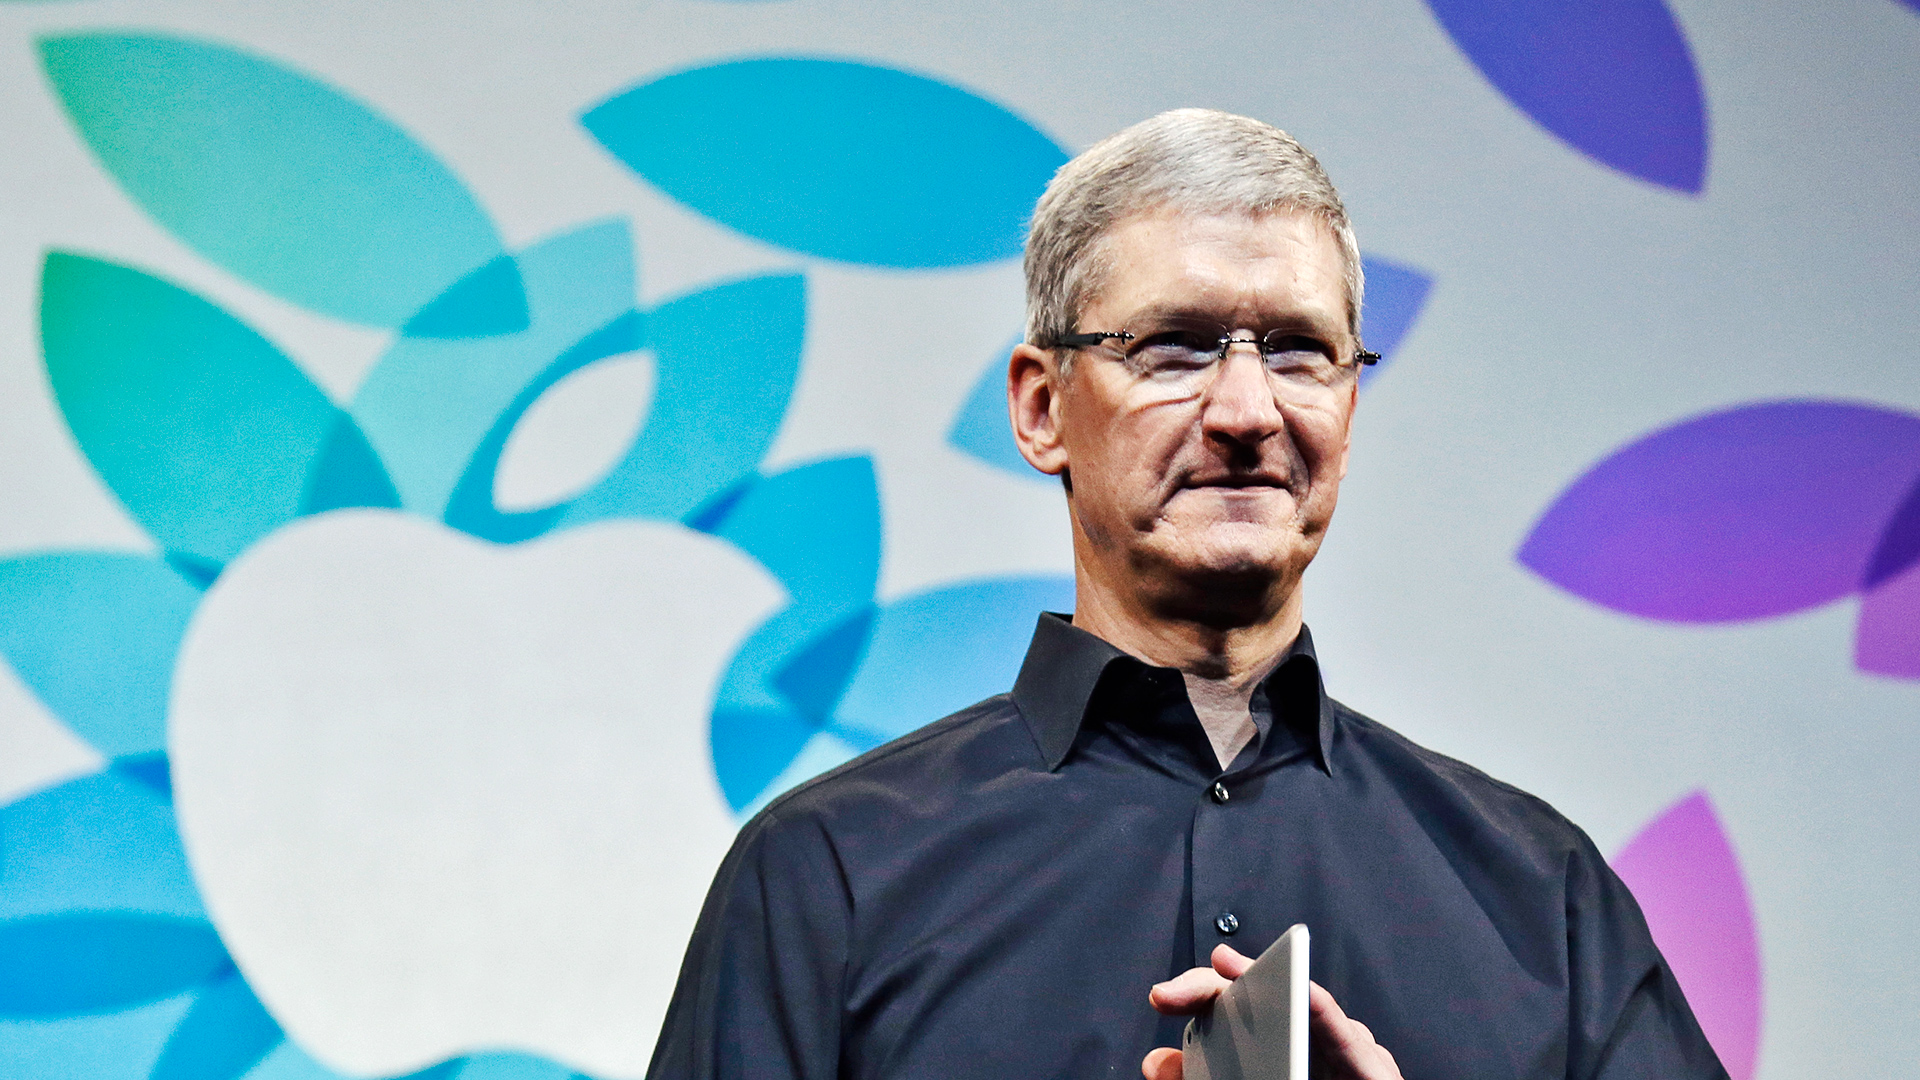 Tim Cook is launching Apple Watch French-style